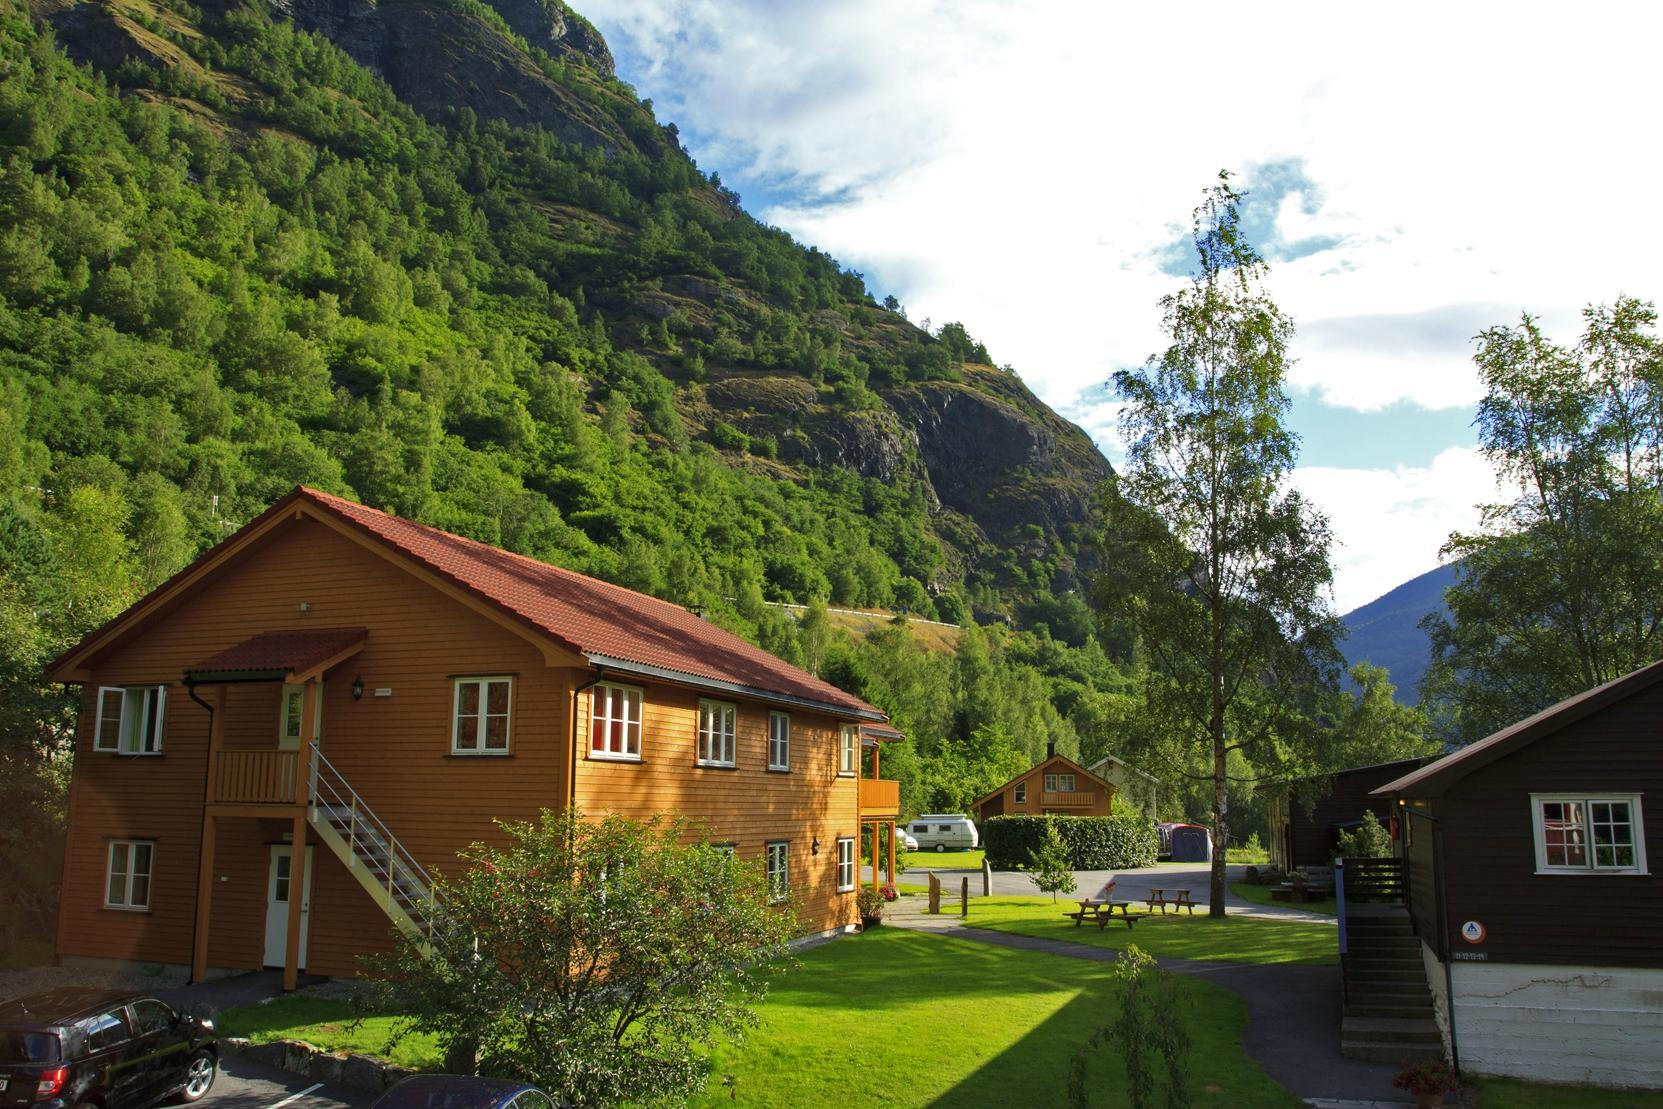 Flam Camping and Youth Hostel